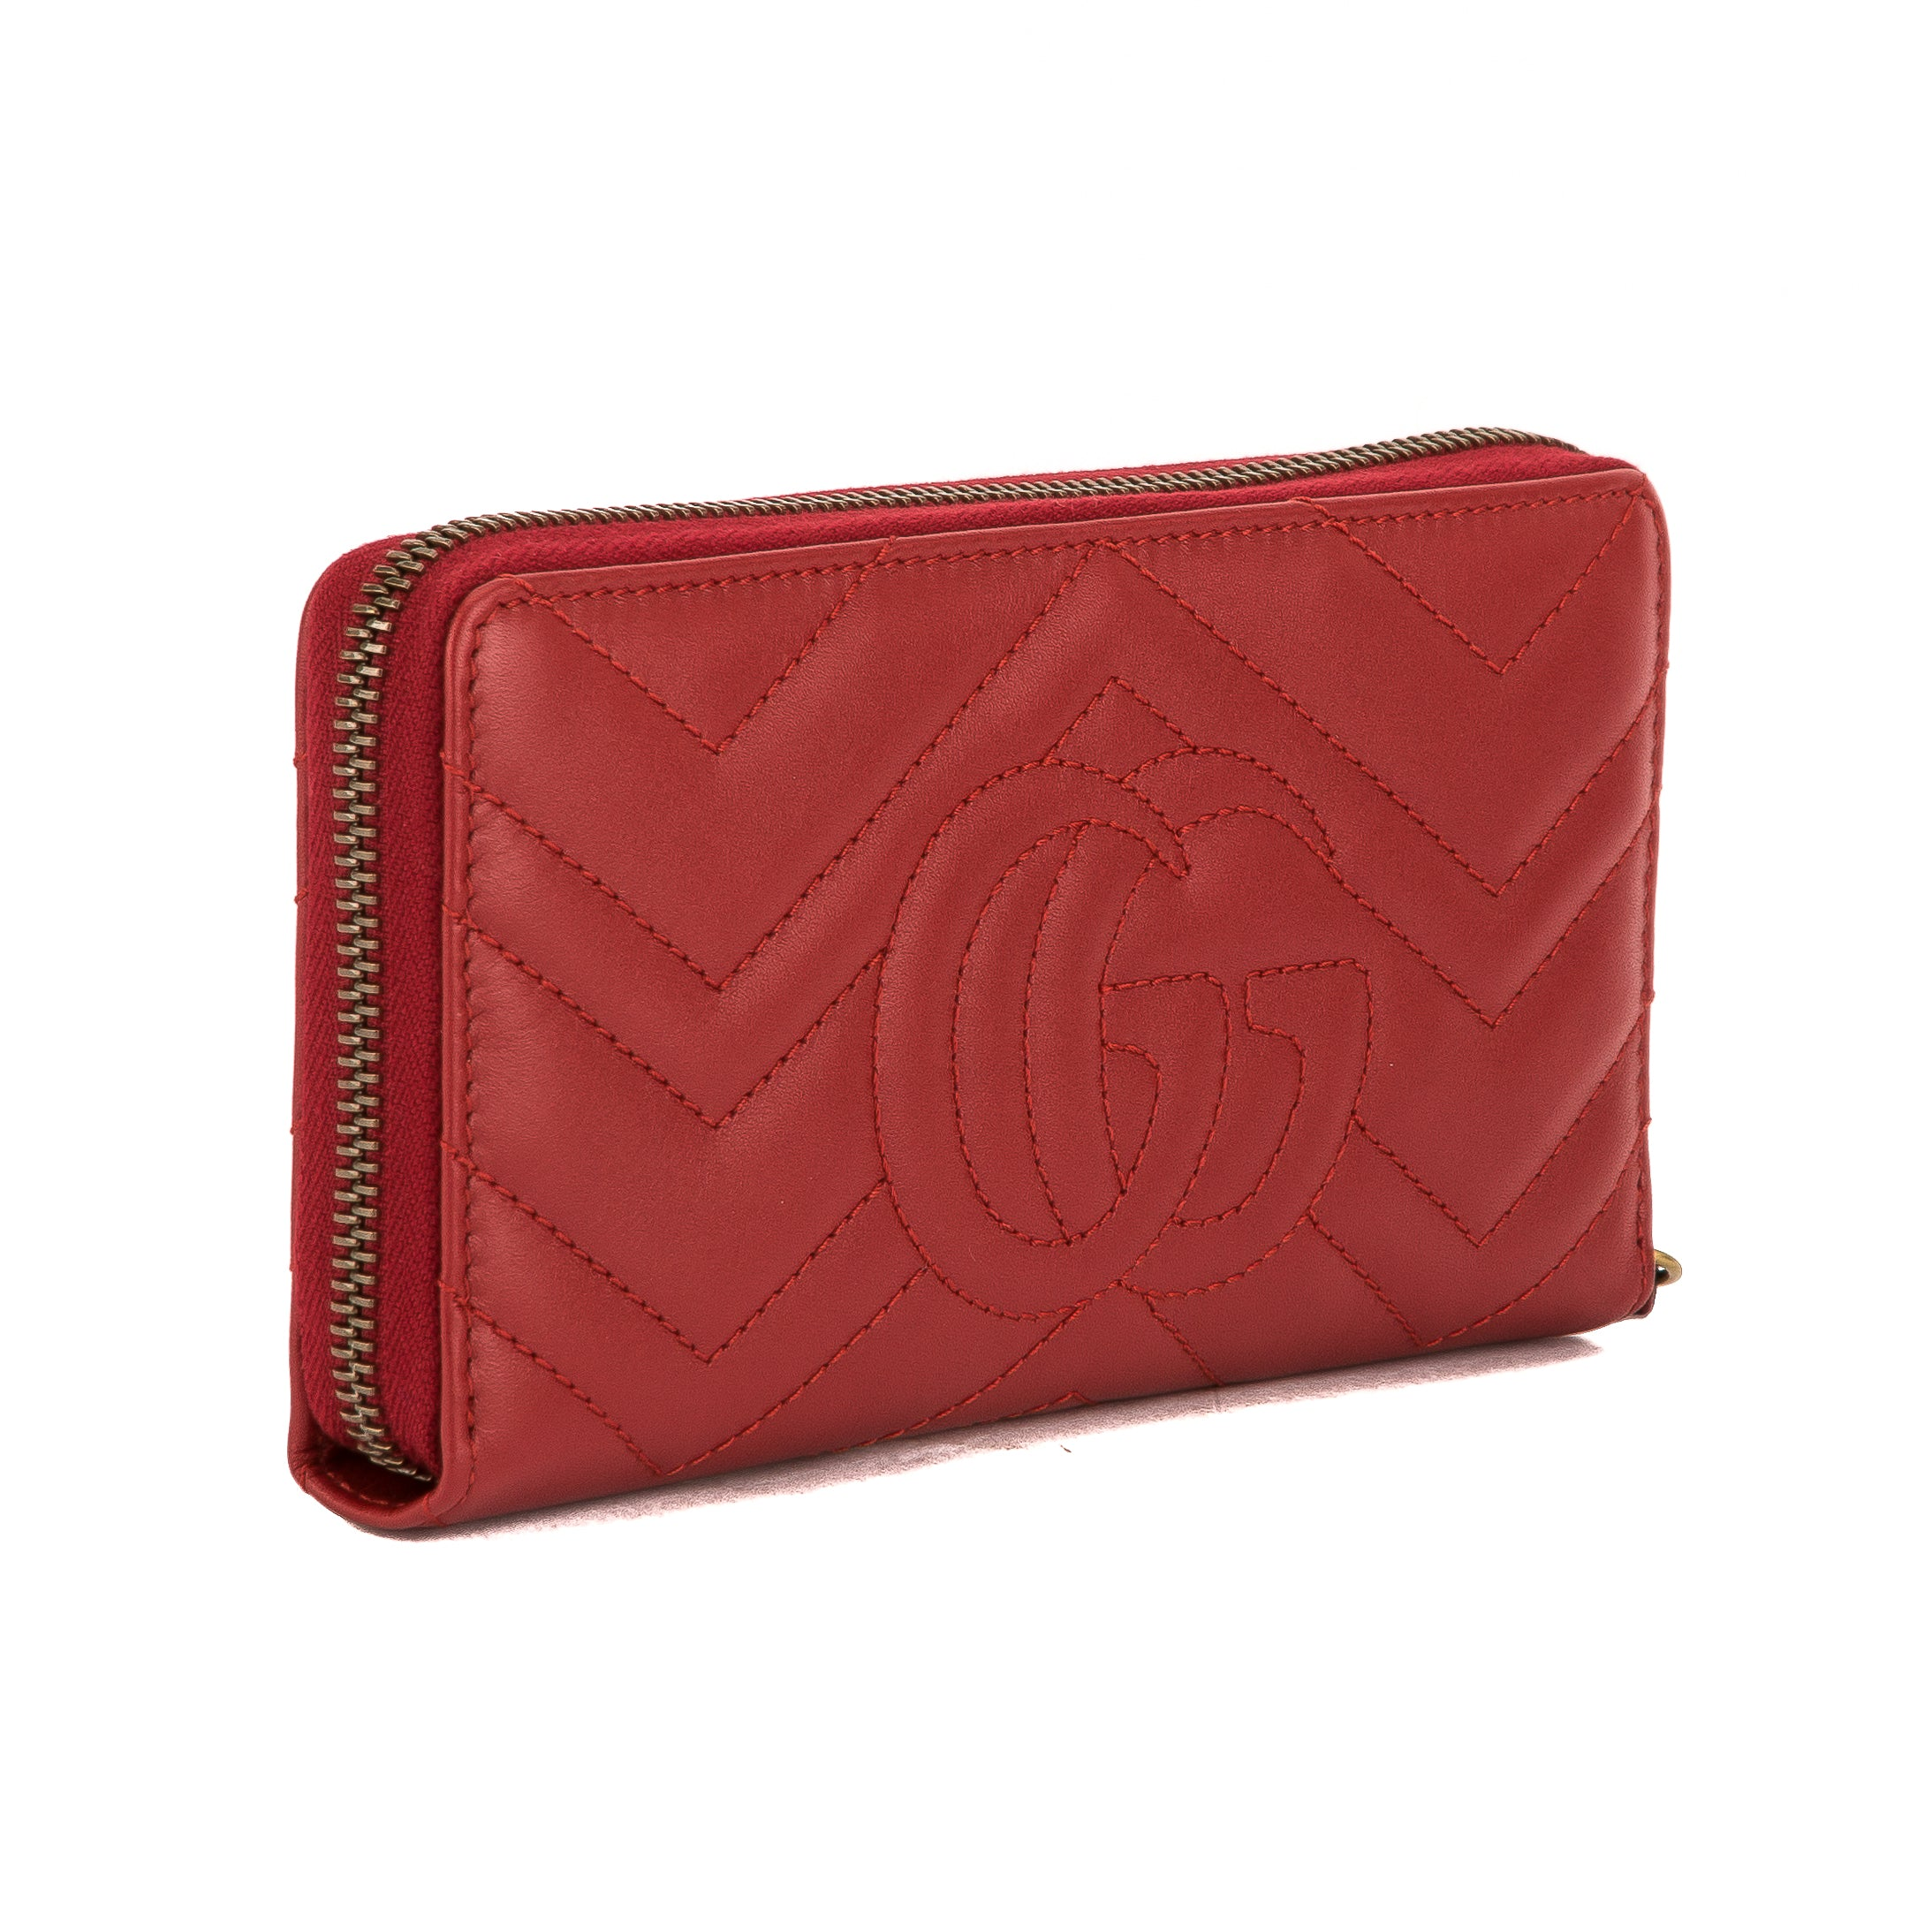 cf8aca557d1 Gucci Hibiscus Red Leather GG Marmont Zip Around Wallet (New with Tags -  3743004